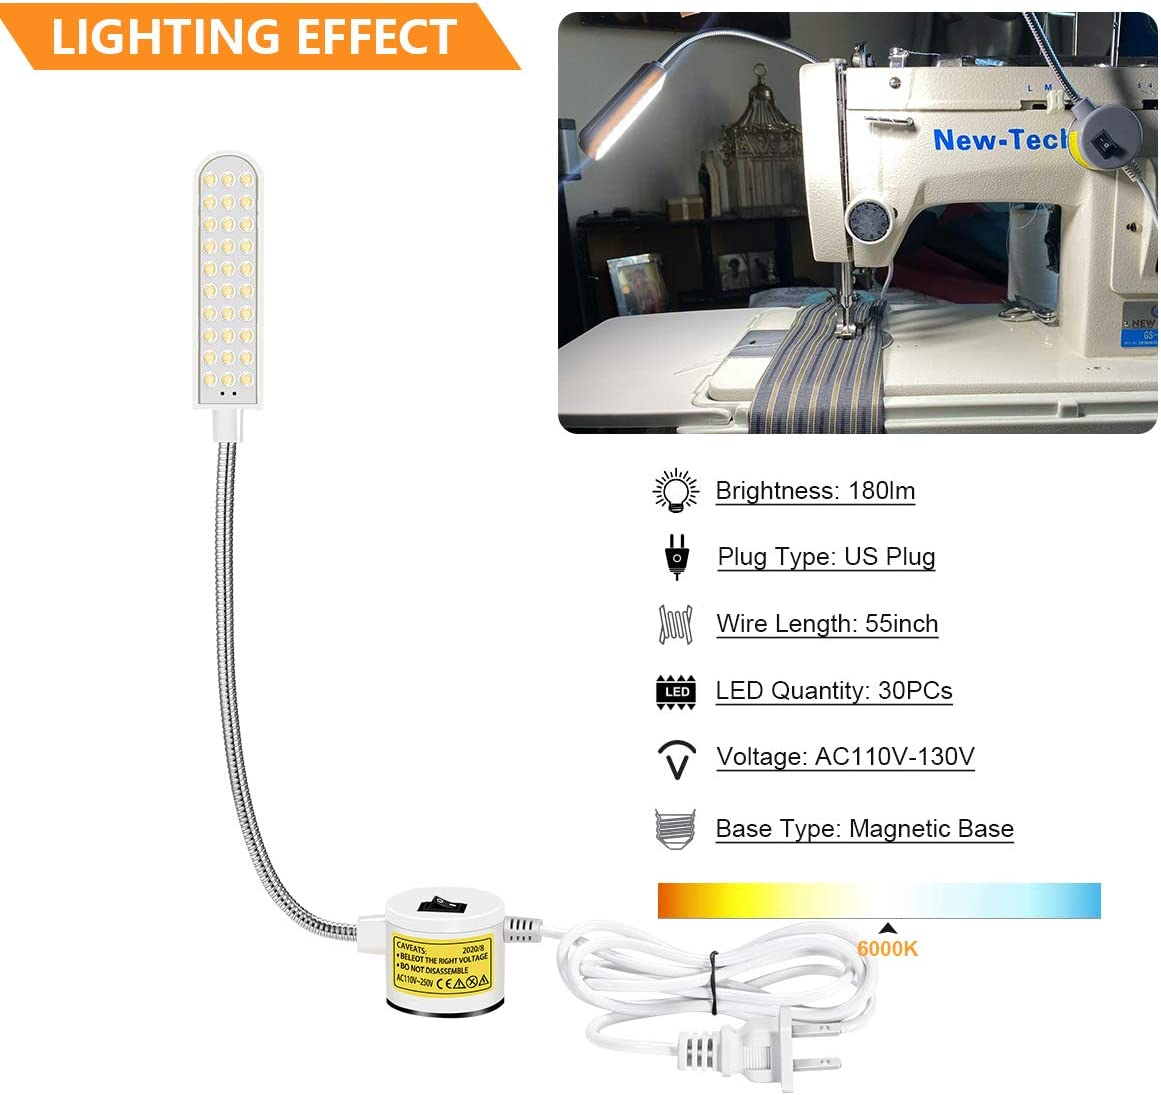 Sewing Machine Light Magnetic Base Light with 110V to 240V Wide Voltage and Powerful Magnet Base LED Lamp Drill Press Light Suitable for Many Sewing Work Stration